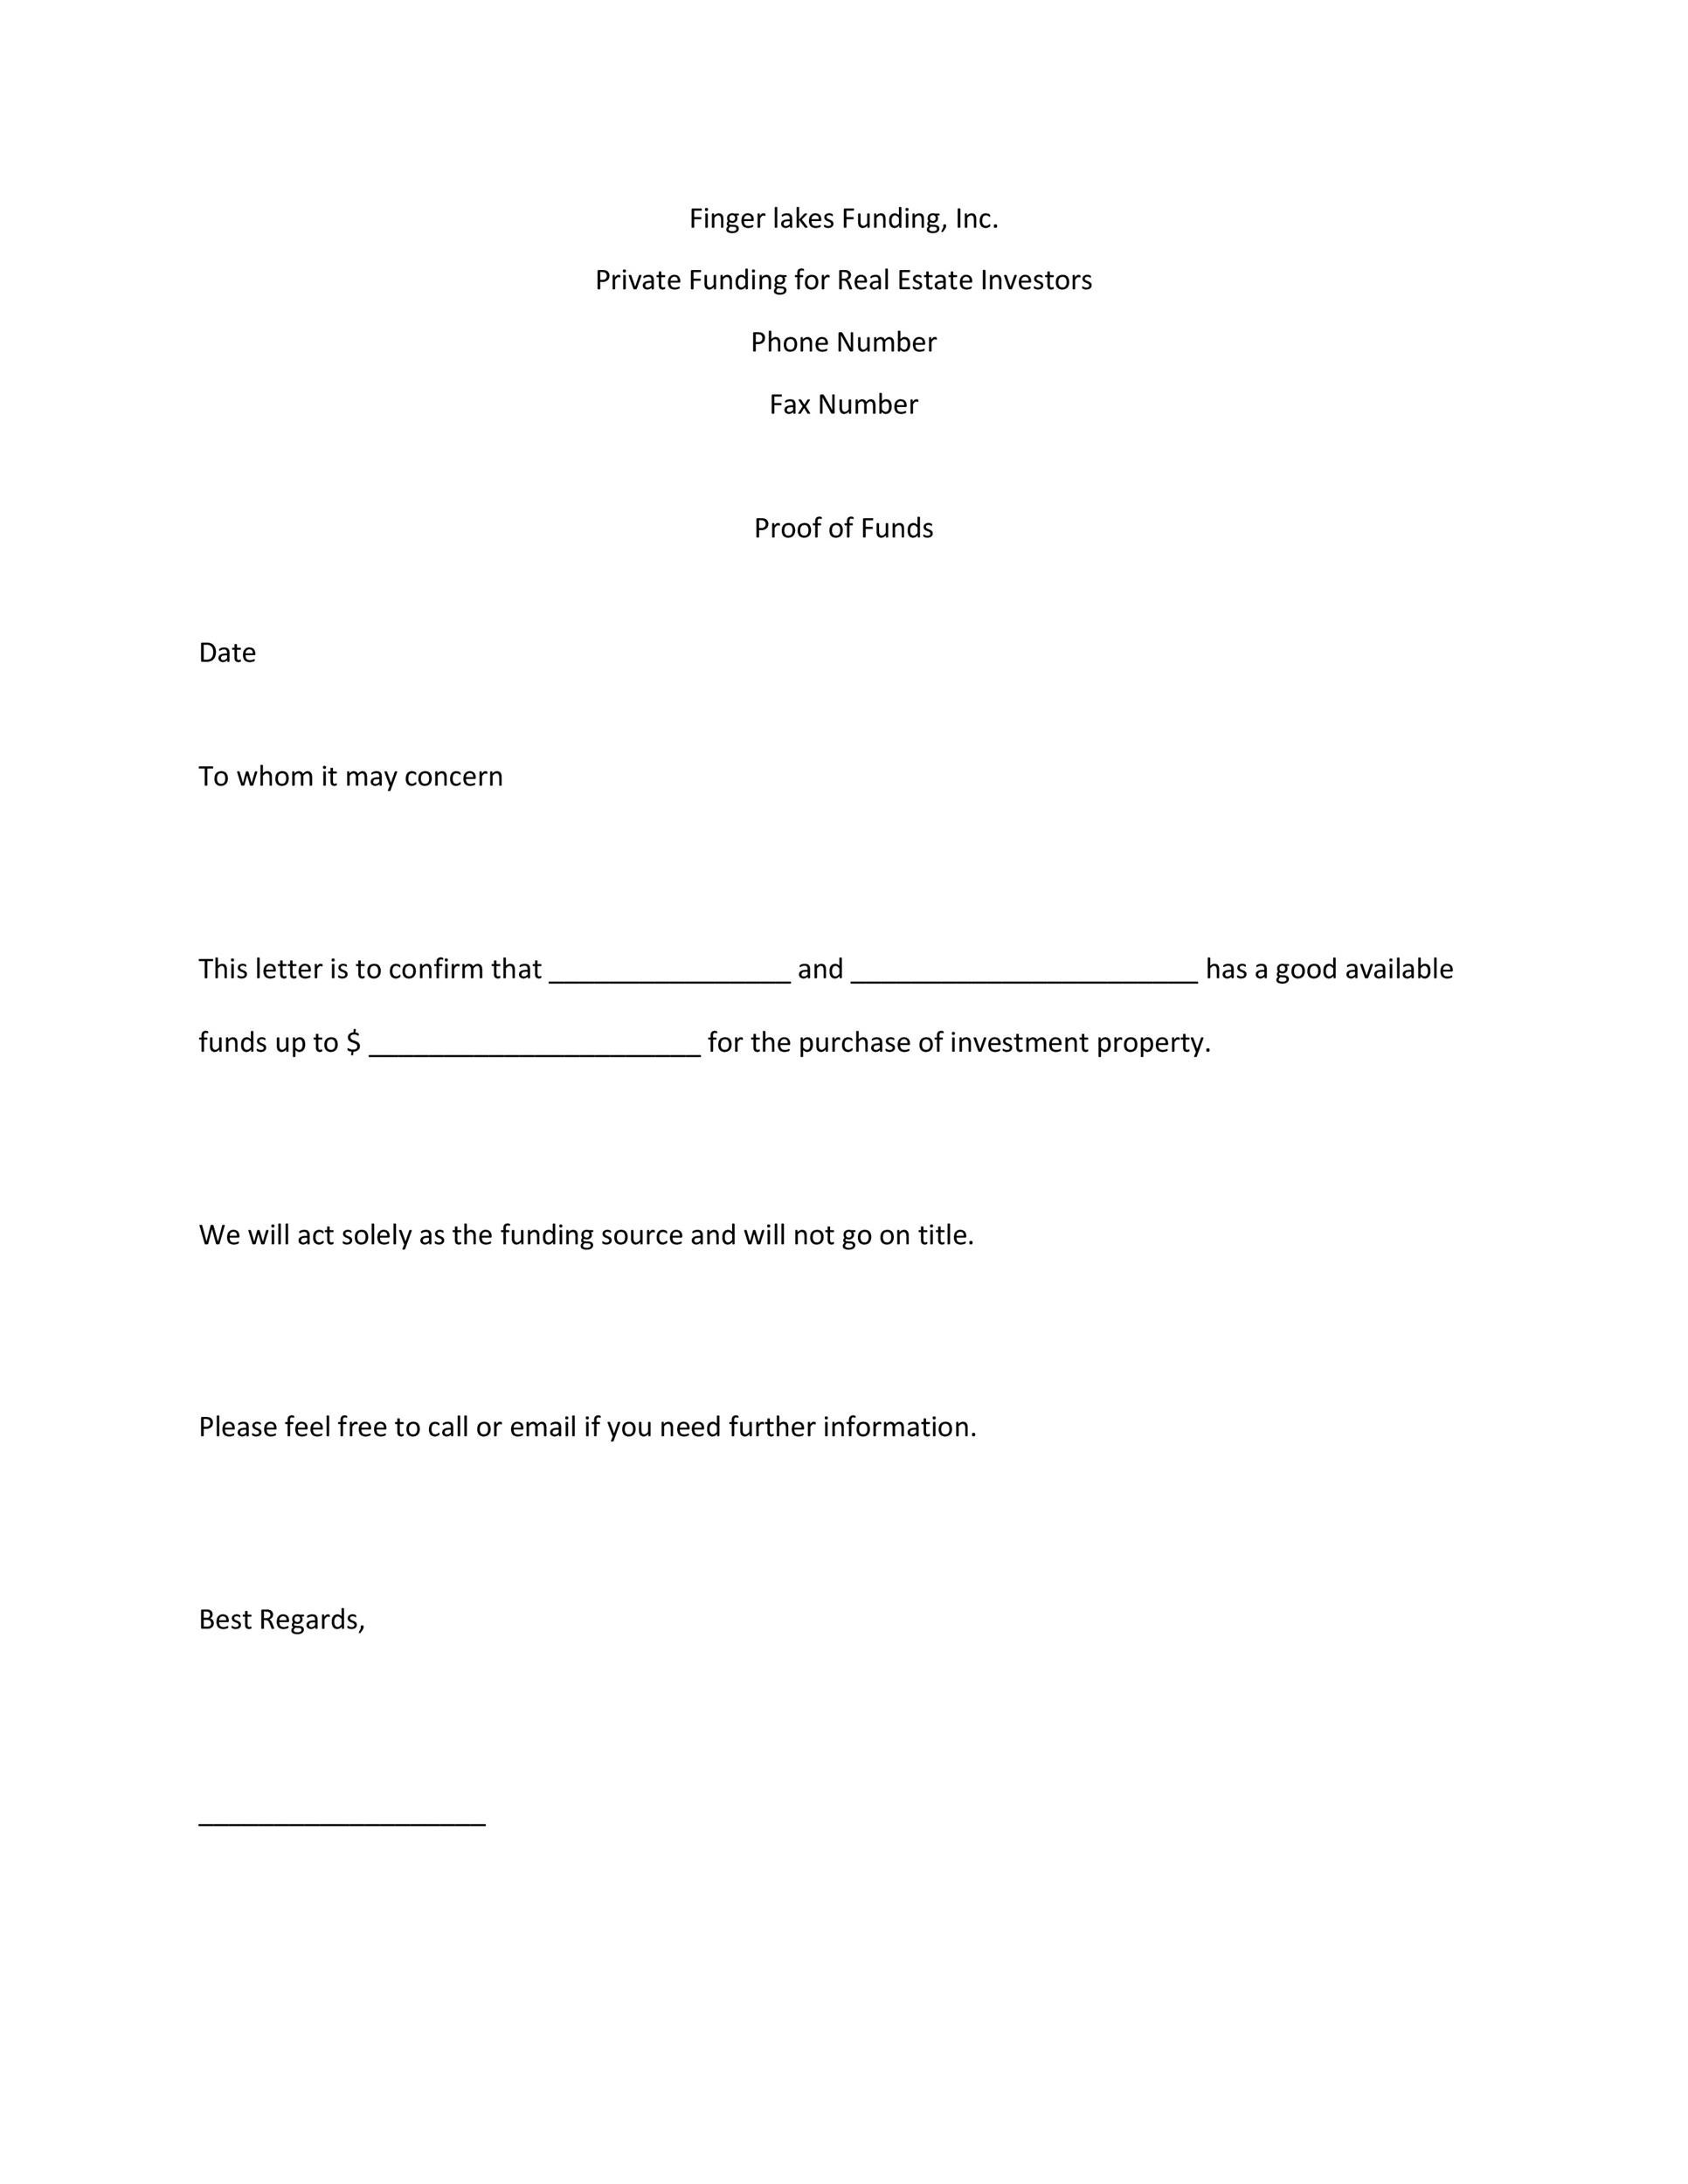 Free proof of funds letter template 13